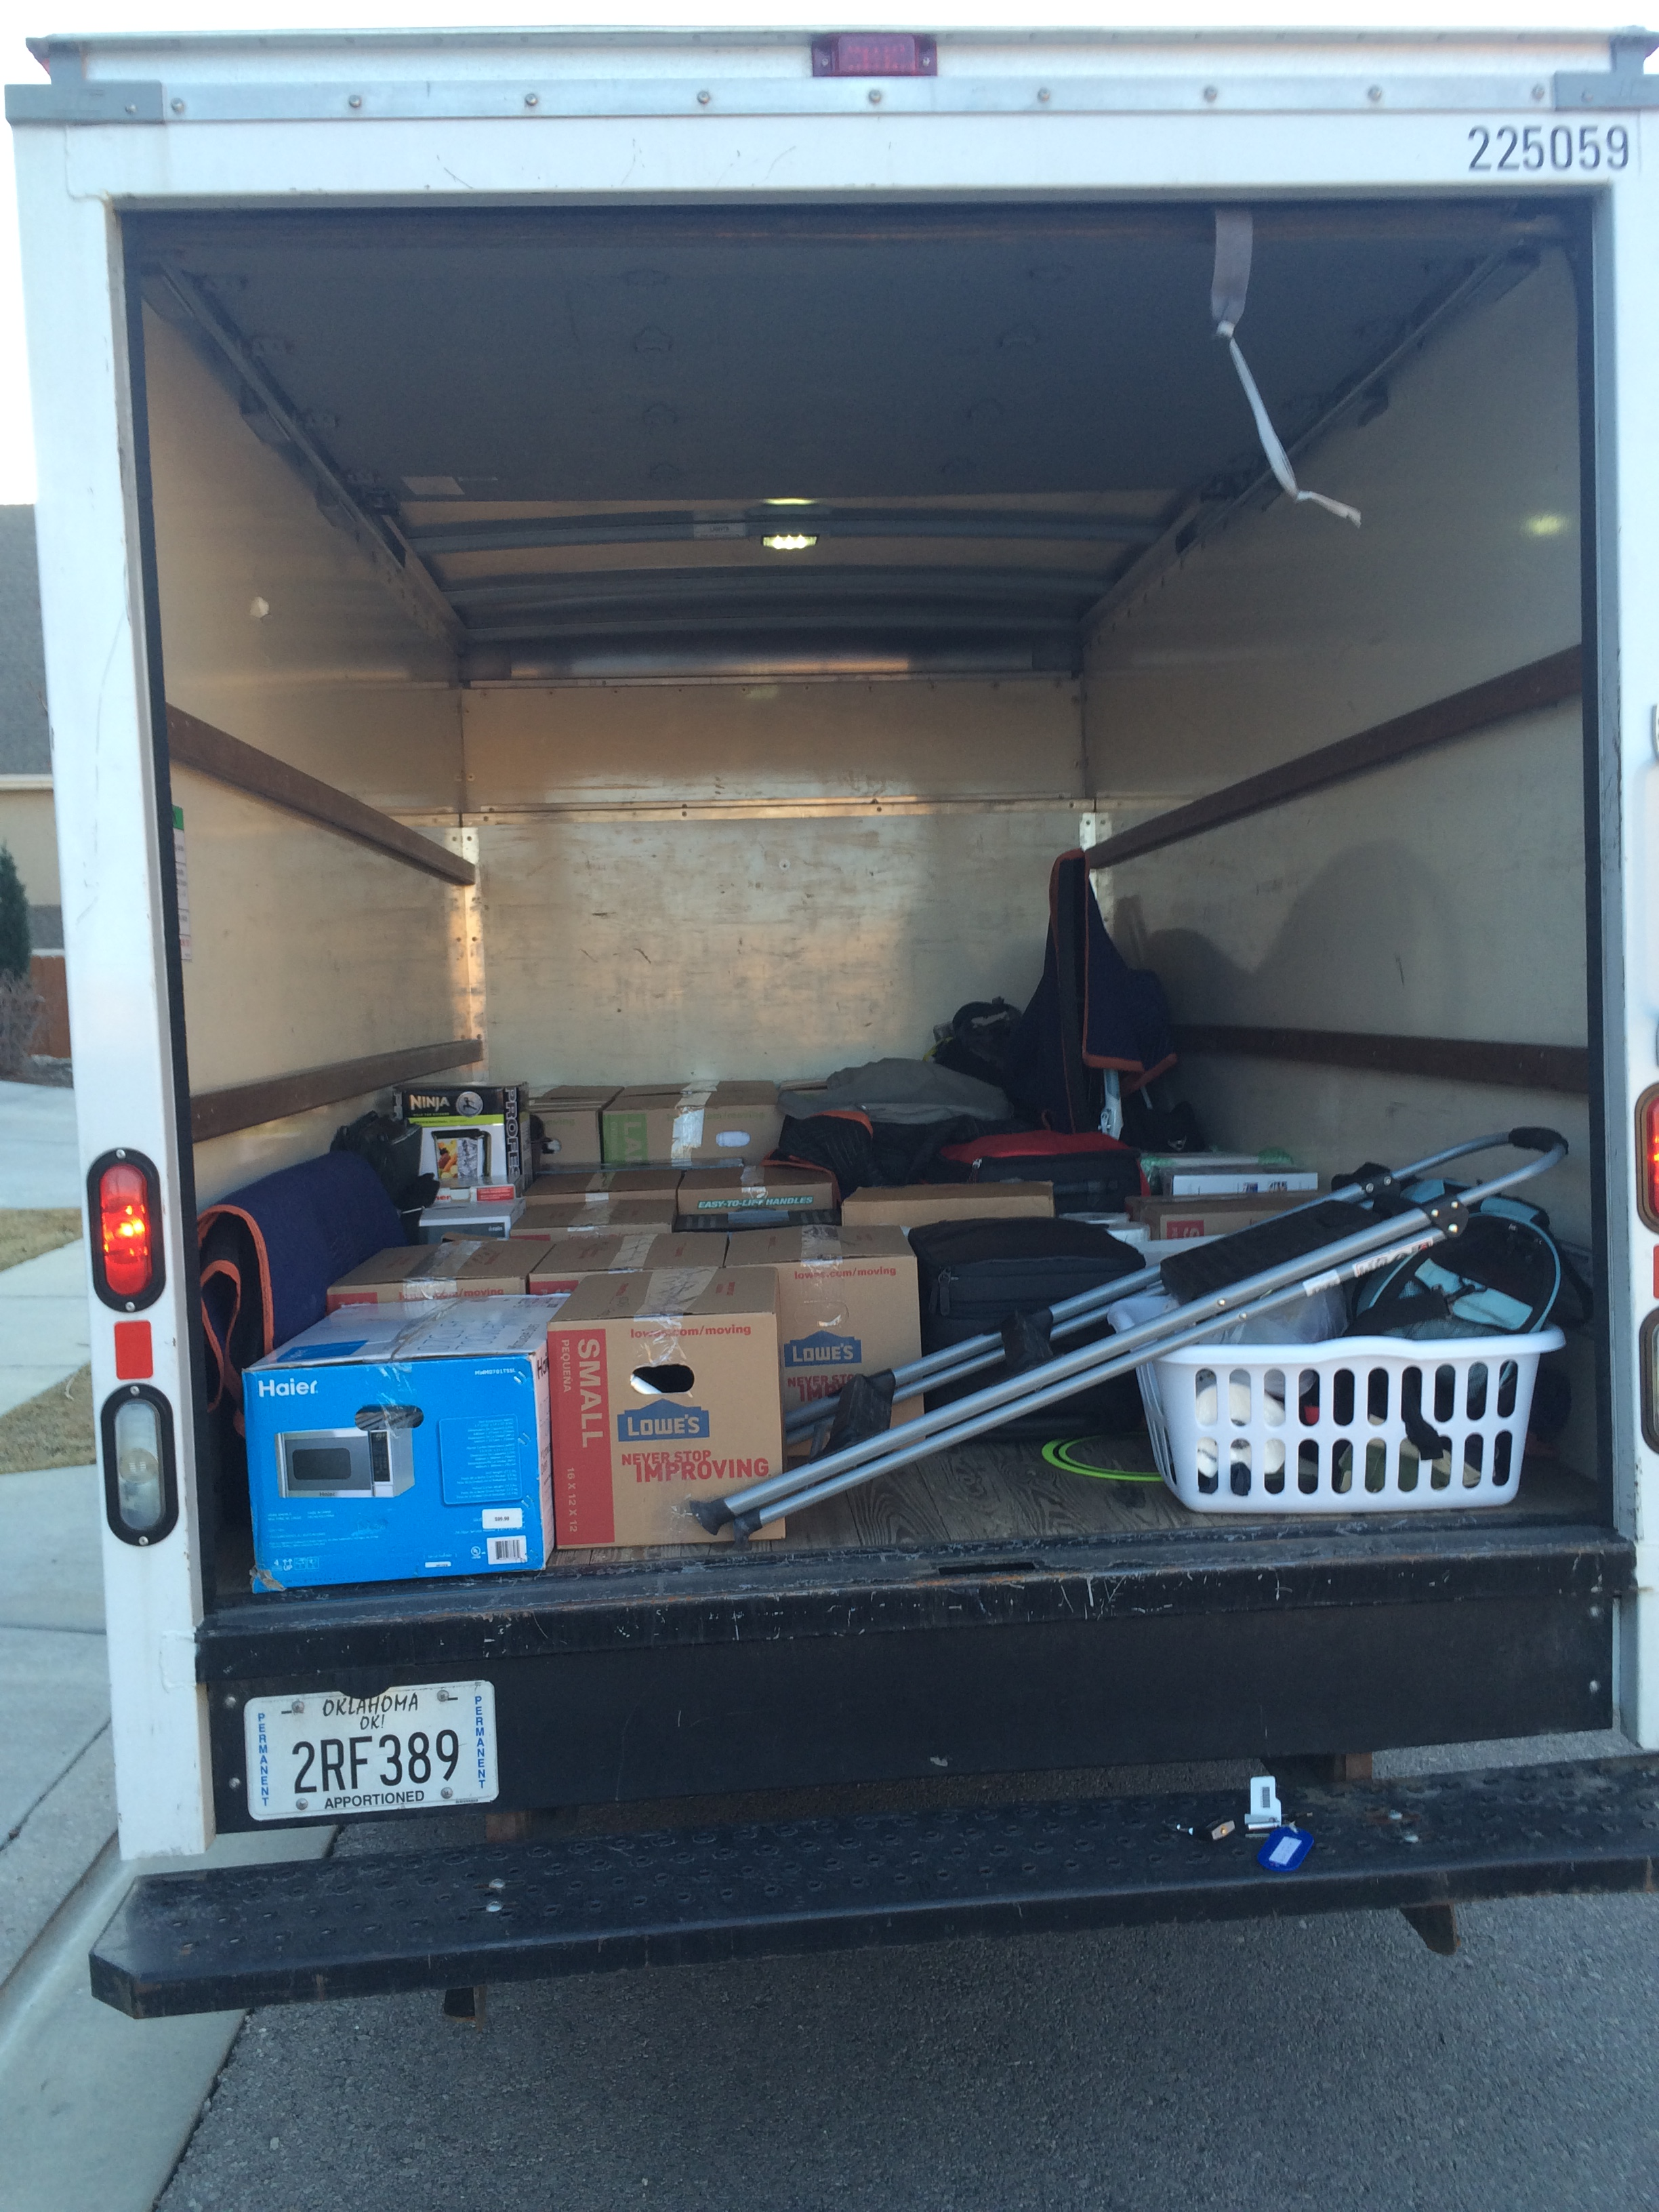 We packed up a 10' Budget rental truck... definitely did not need the whole thing. Or 80% of it.